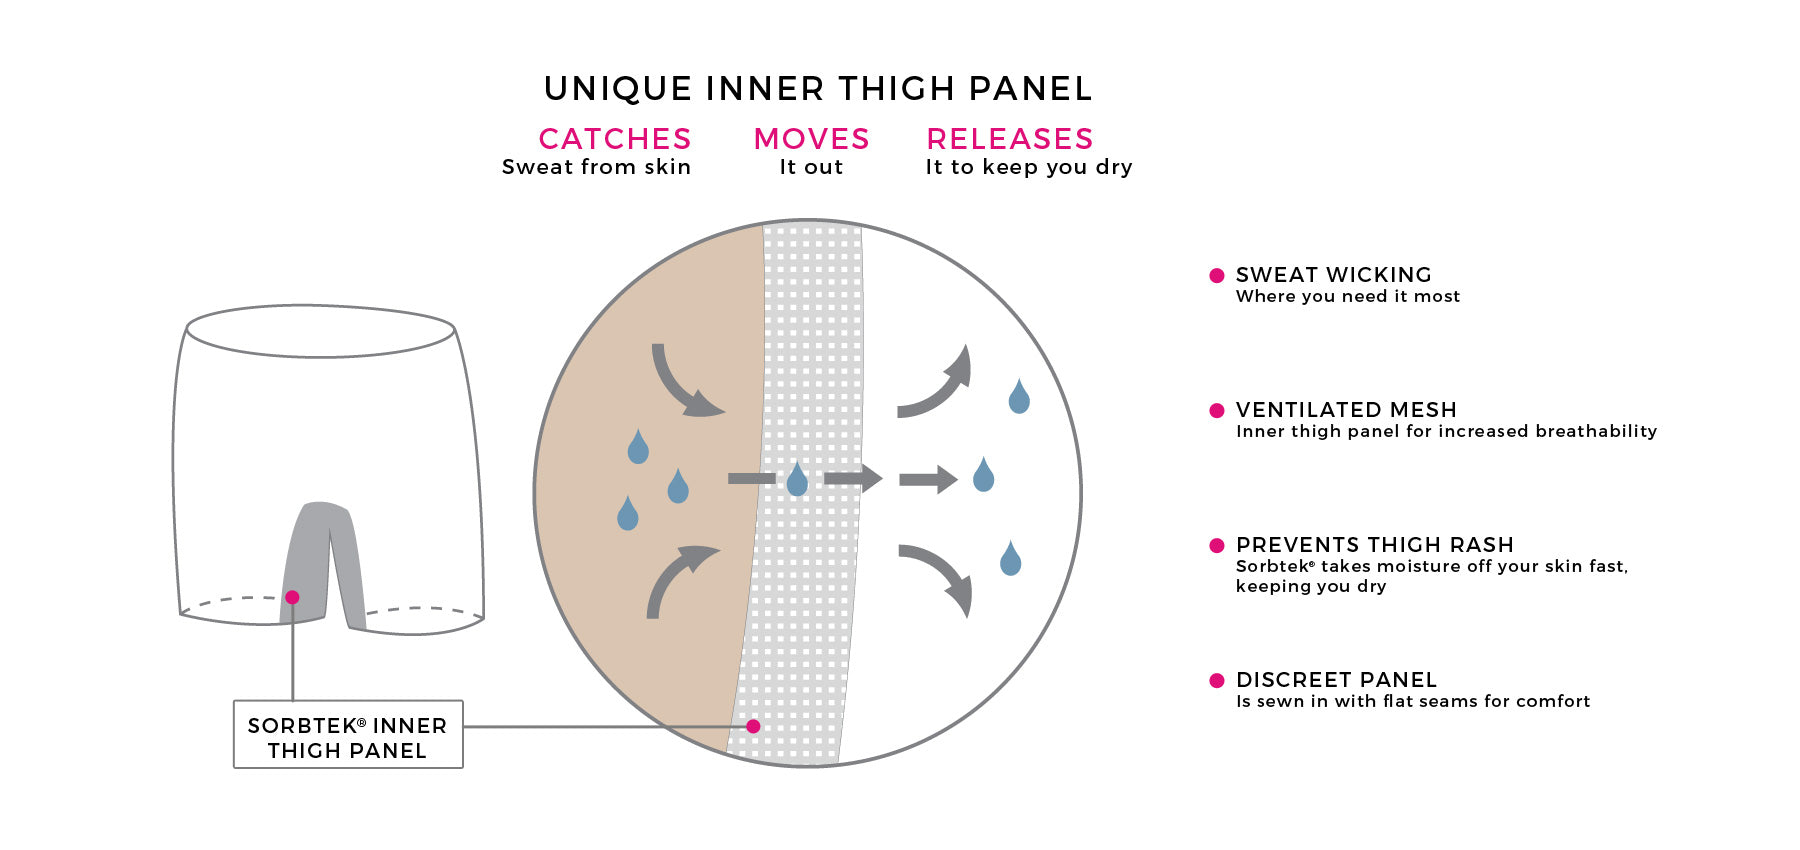 Moisture-wicking technology in our inner thigh panel keeps you dry & comfortable